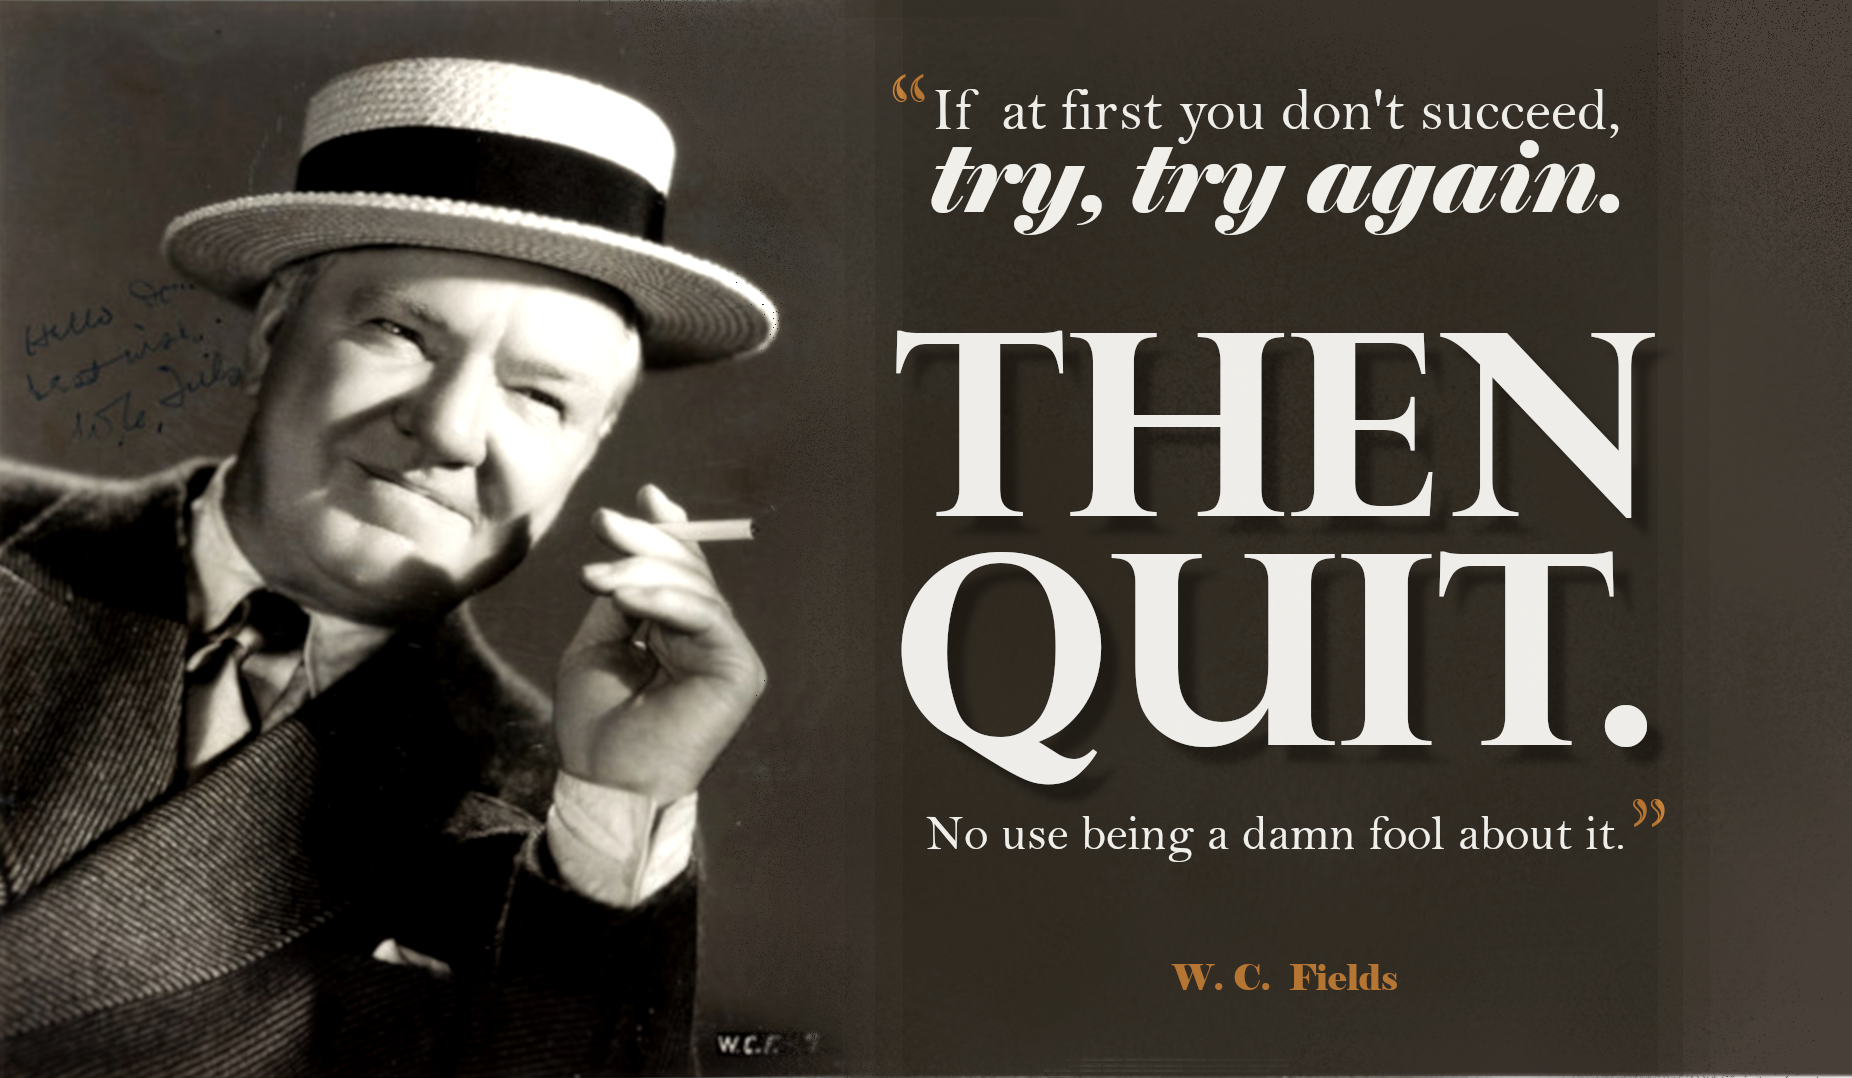 """If at first you don't succeed, try, try again. Then quit. No use being a damn fool about it"" – W. C. Fields [1852×1078]"